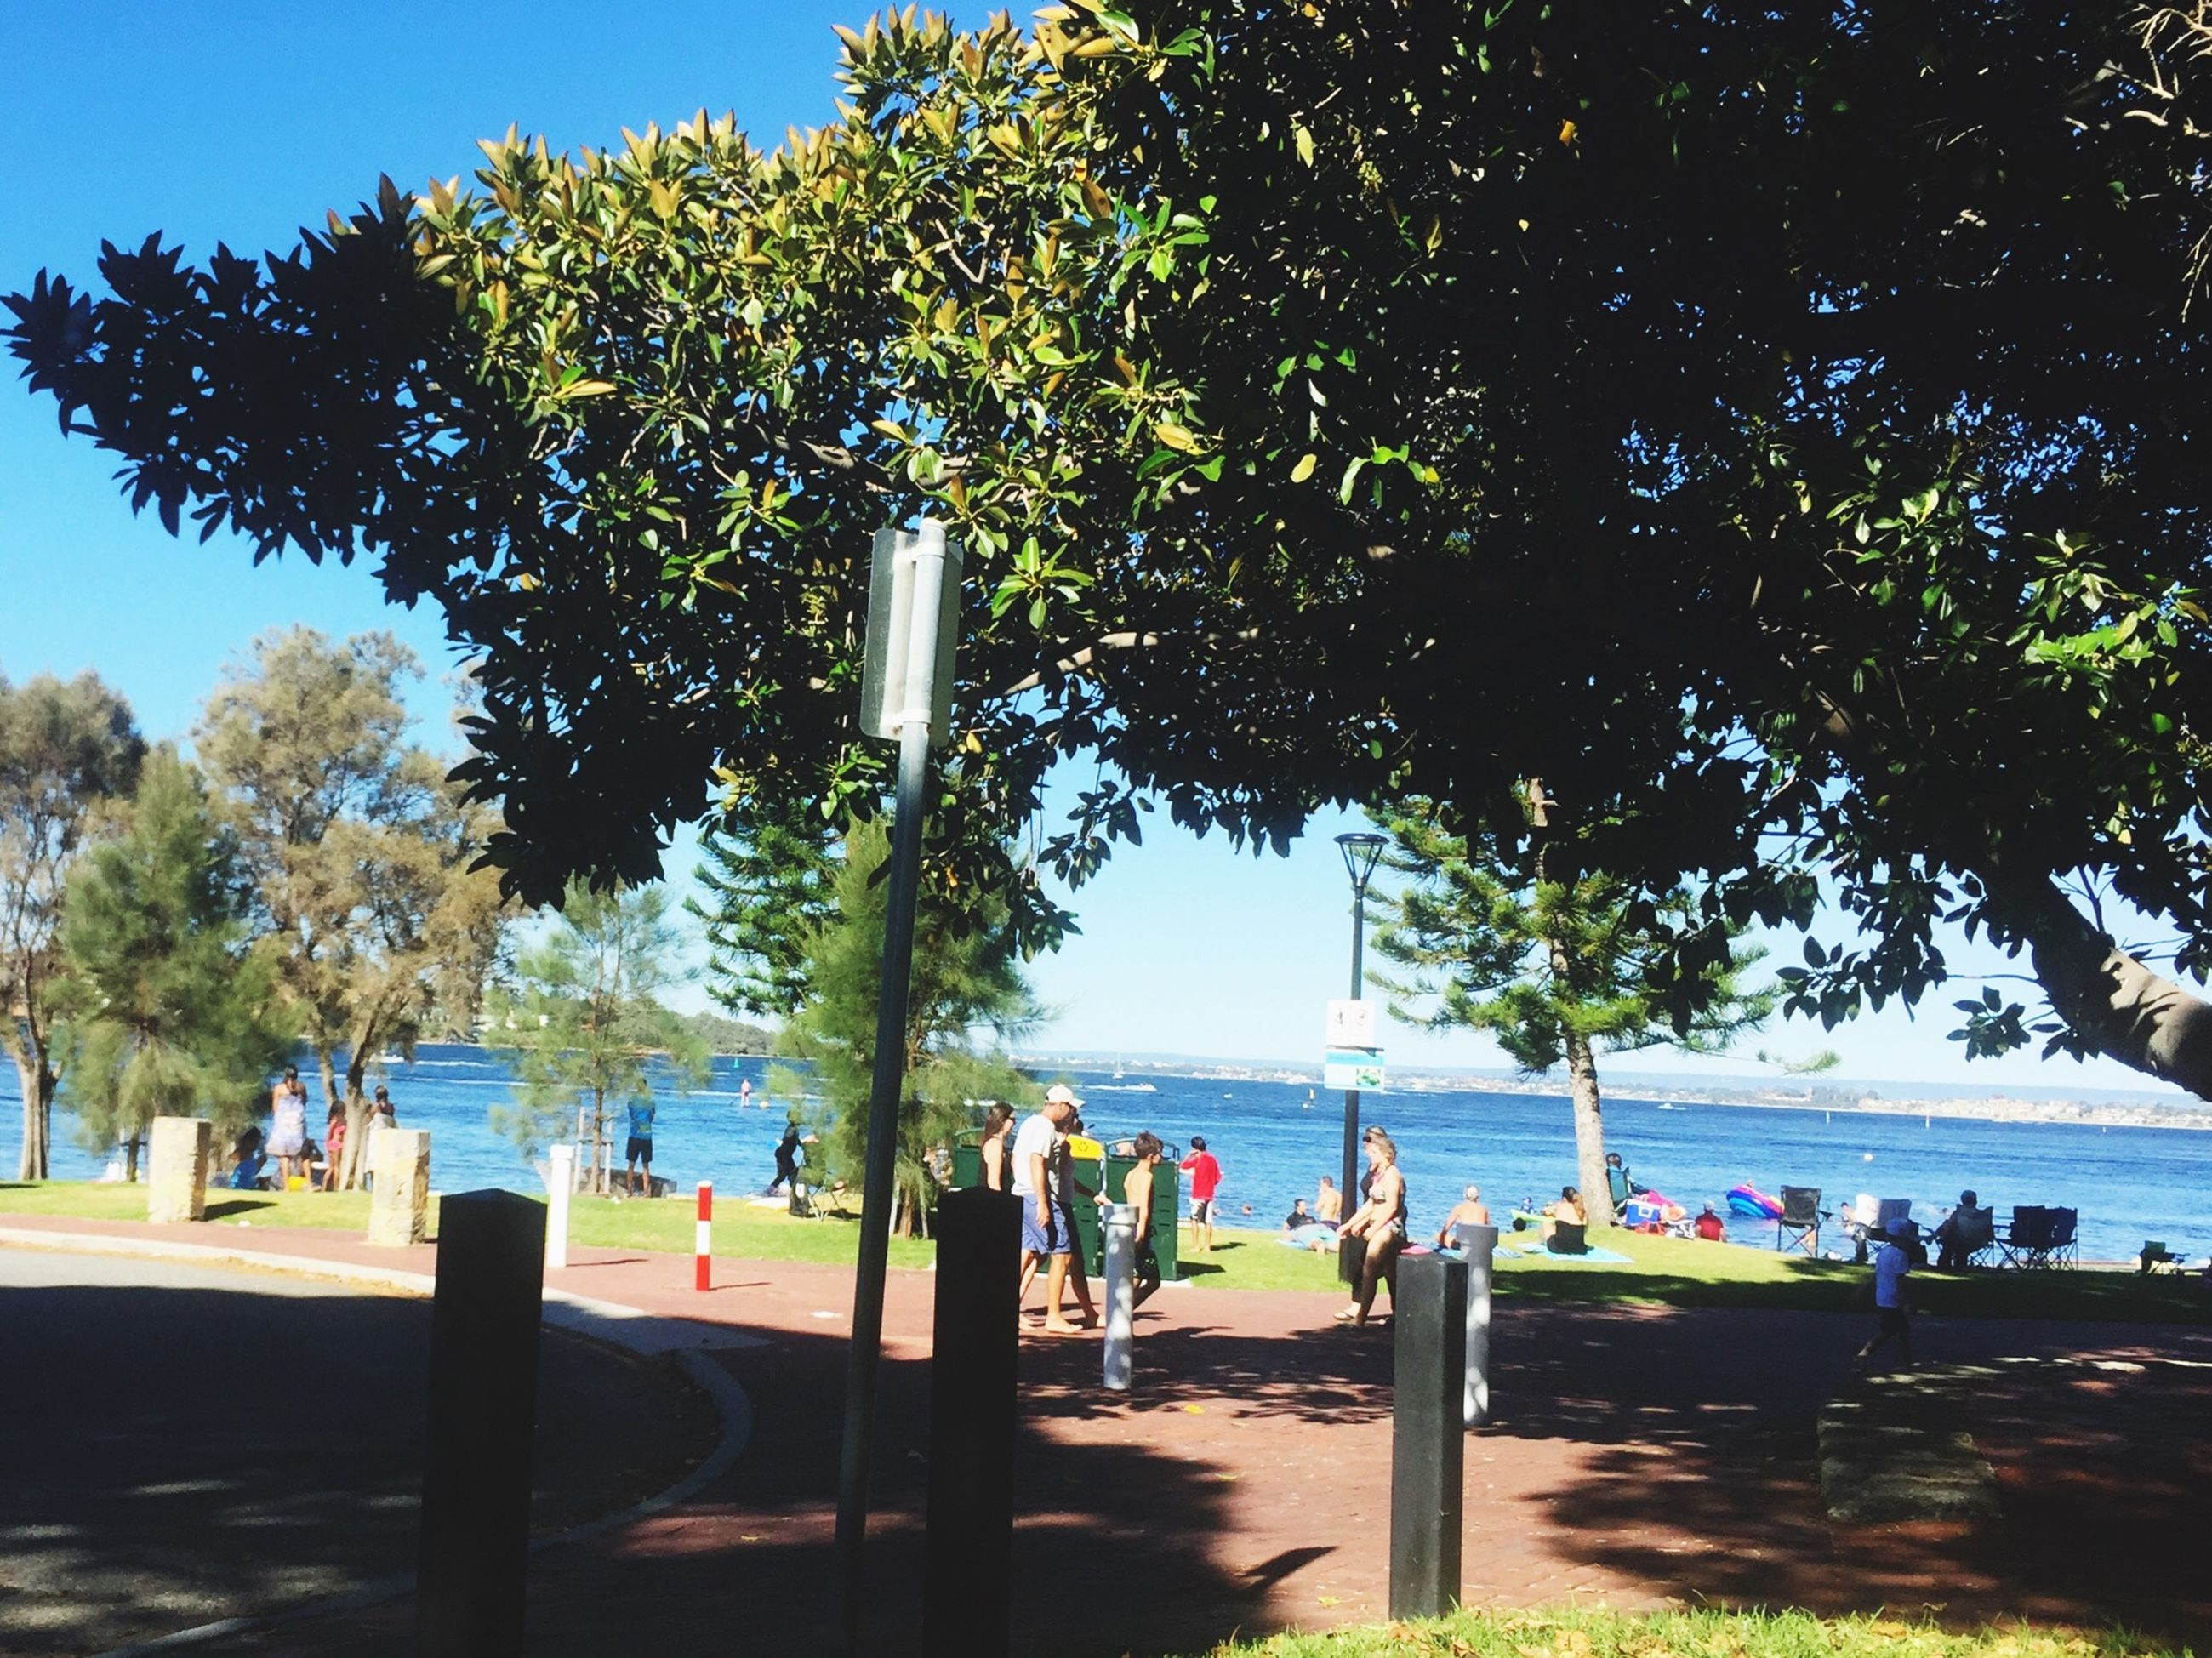 tree, men, person, lifestyles, leisure activity, large group of people, water, beach, group of people, medium group of people, sunlight, sky, shadow, sea, nature, mixed age range, park - man made space, vacations, blue